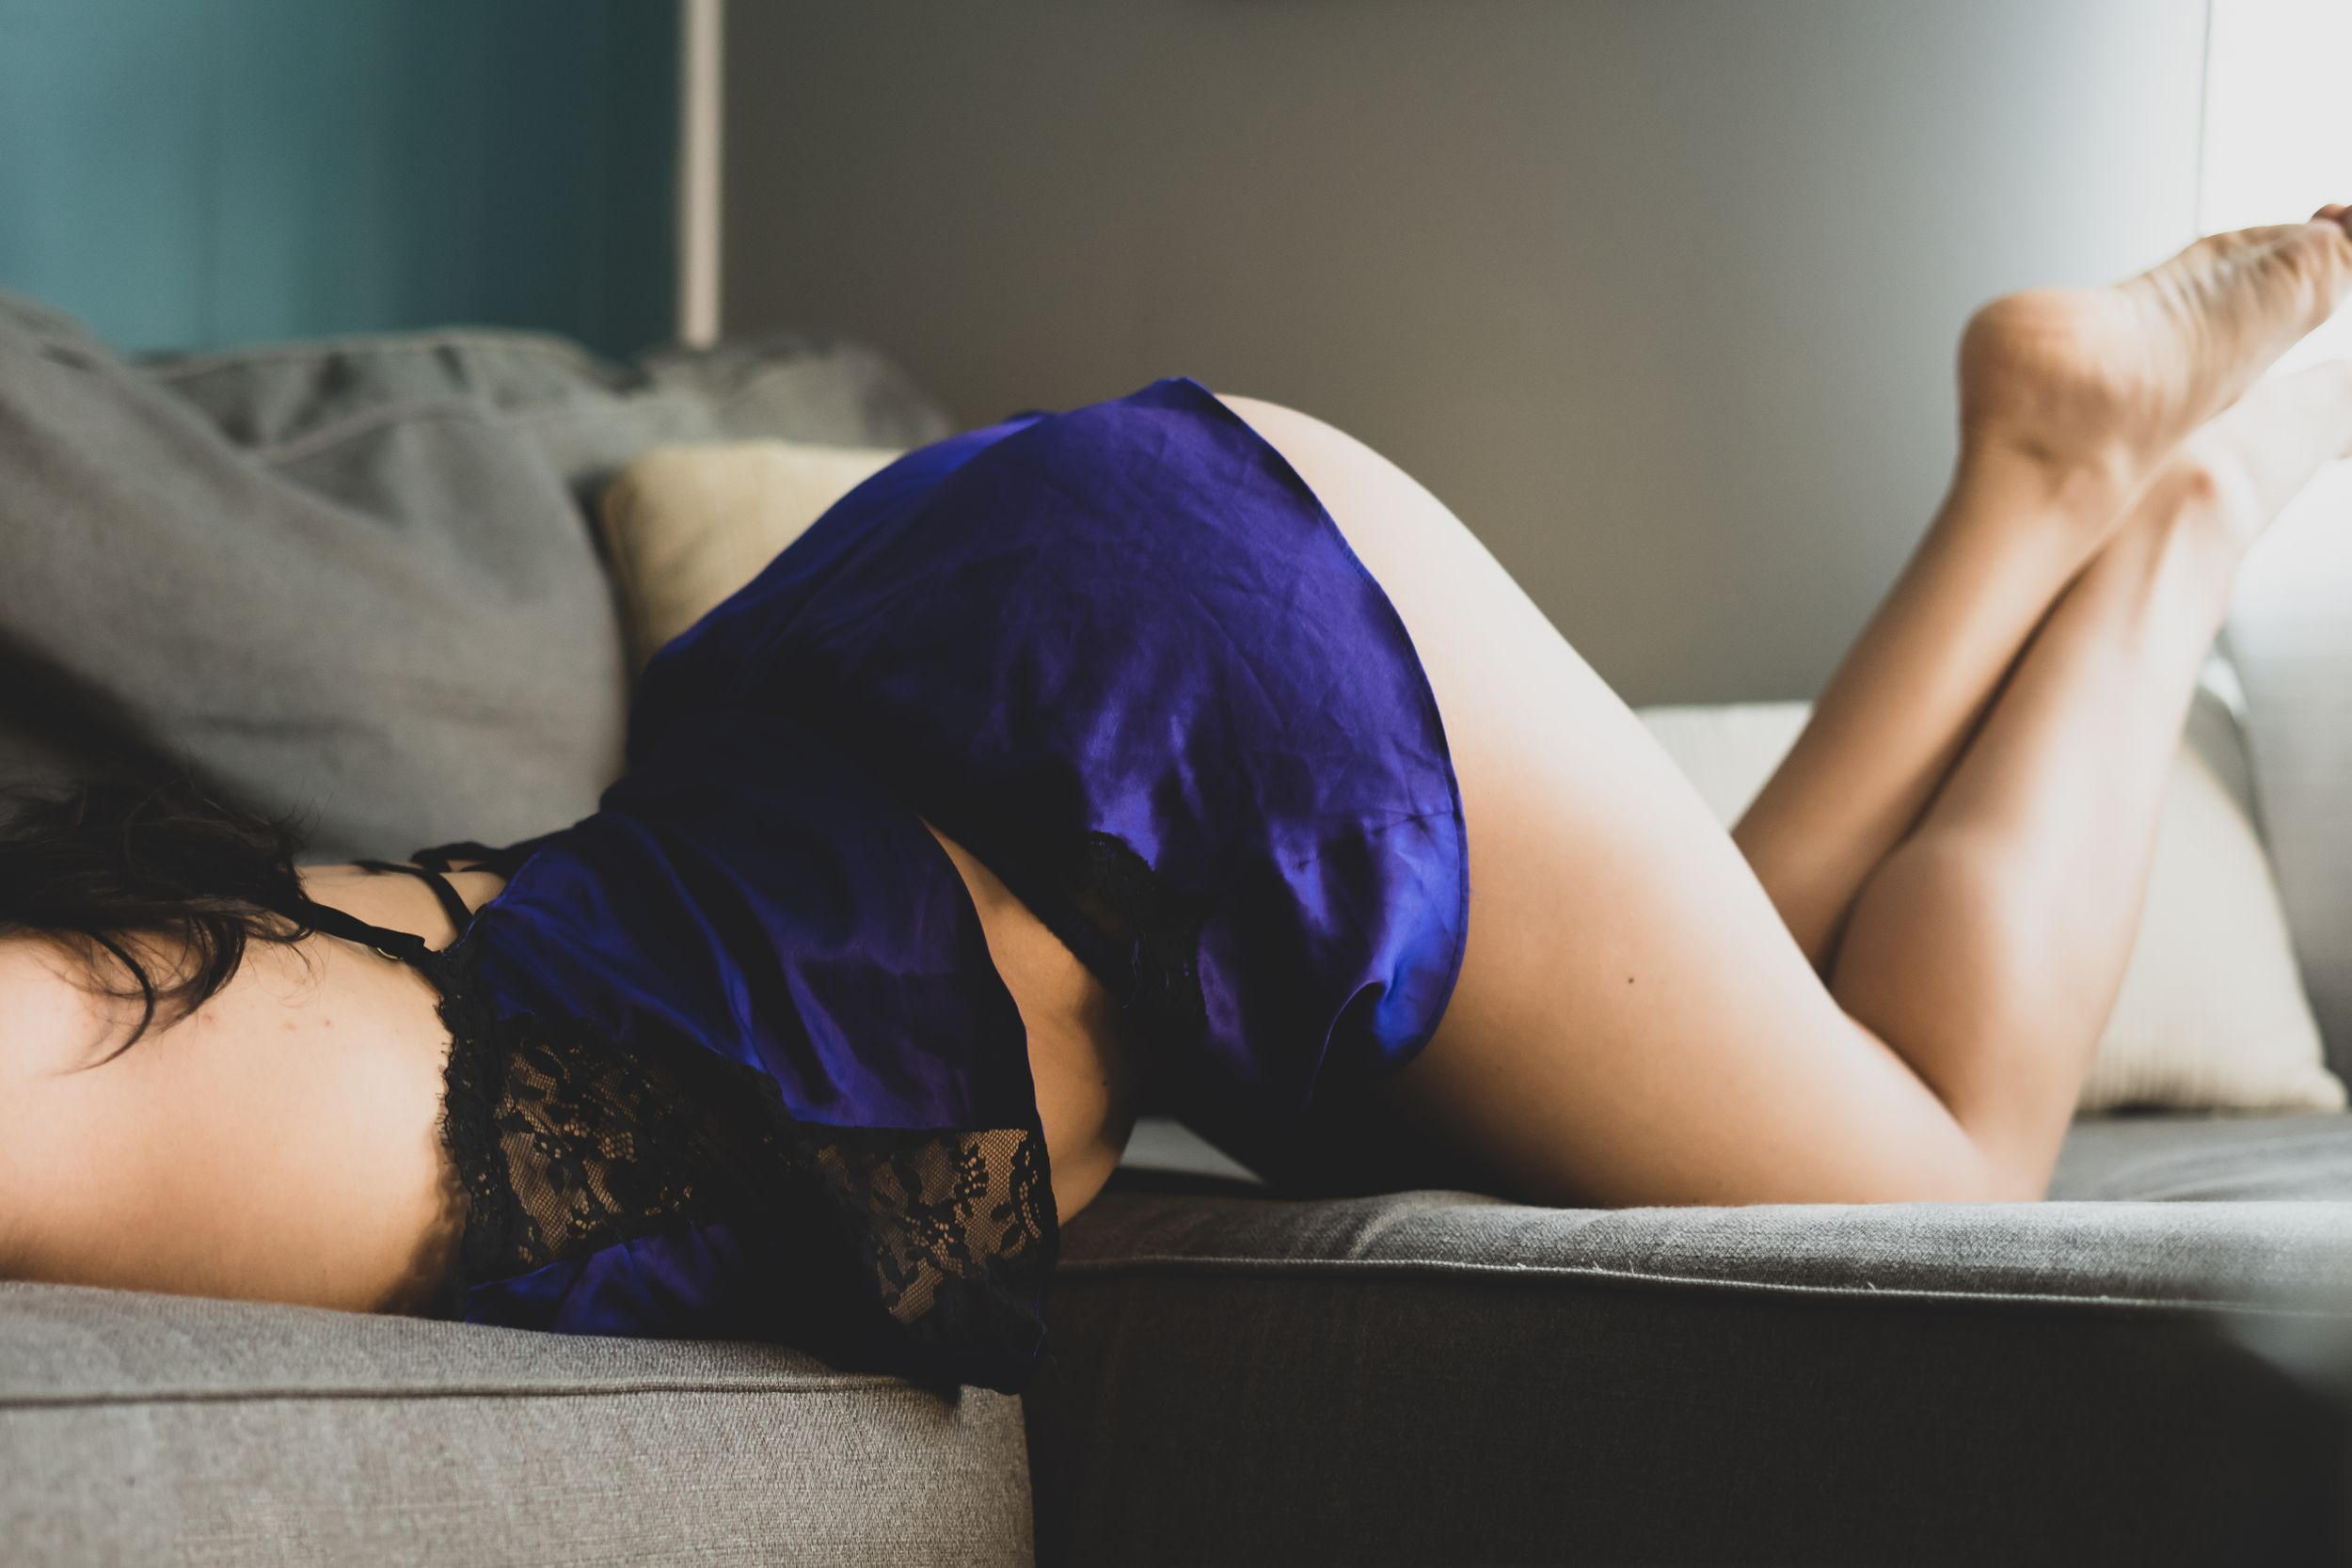 In-home boudoir session with female arching back and raising butt in purple lingerie for cozy boudoir session.